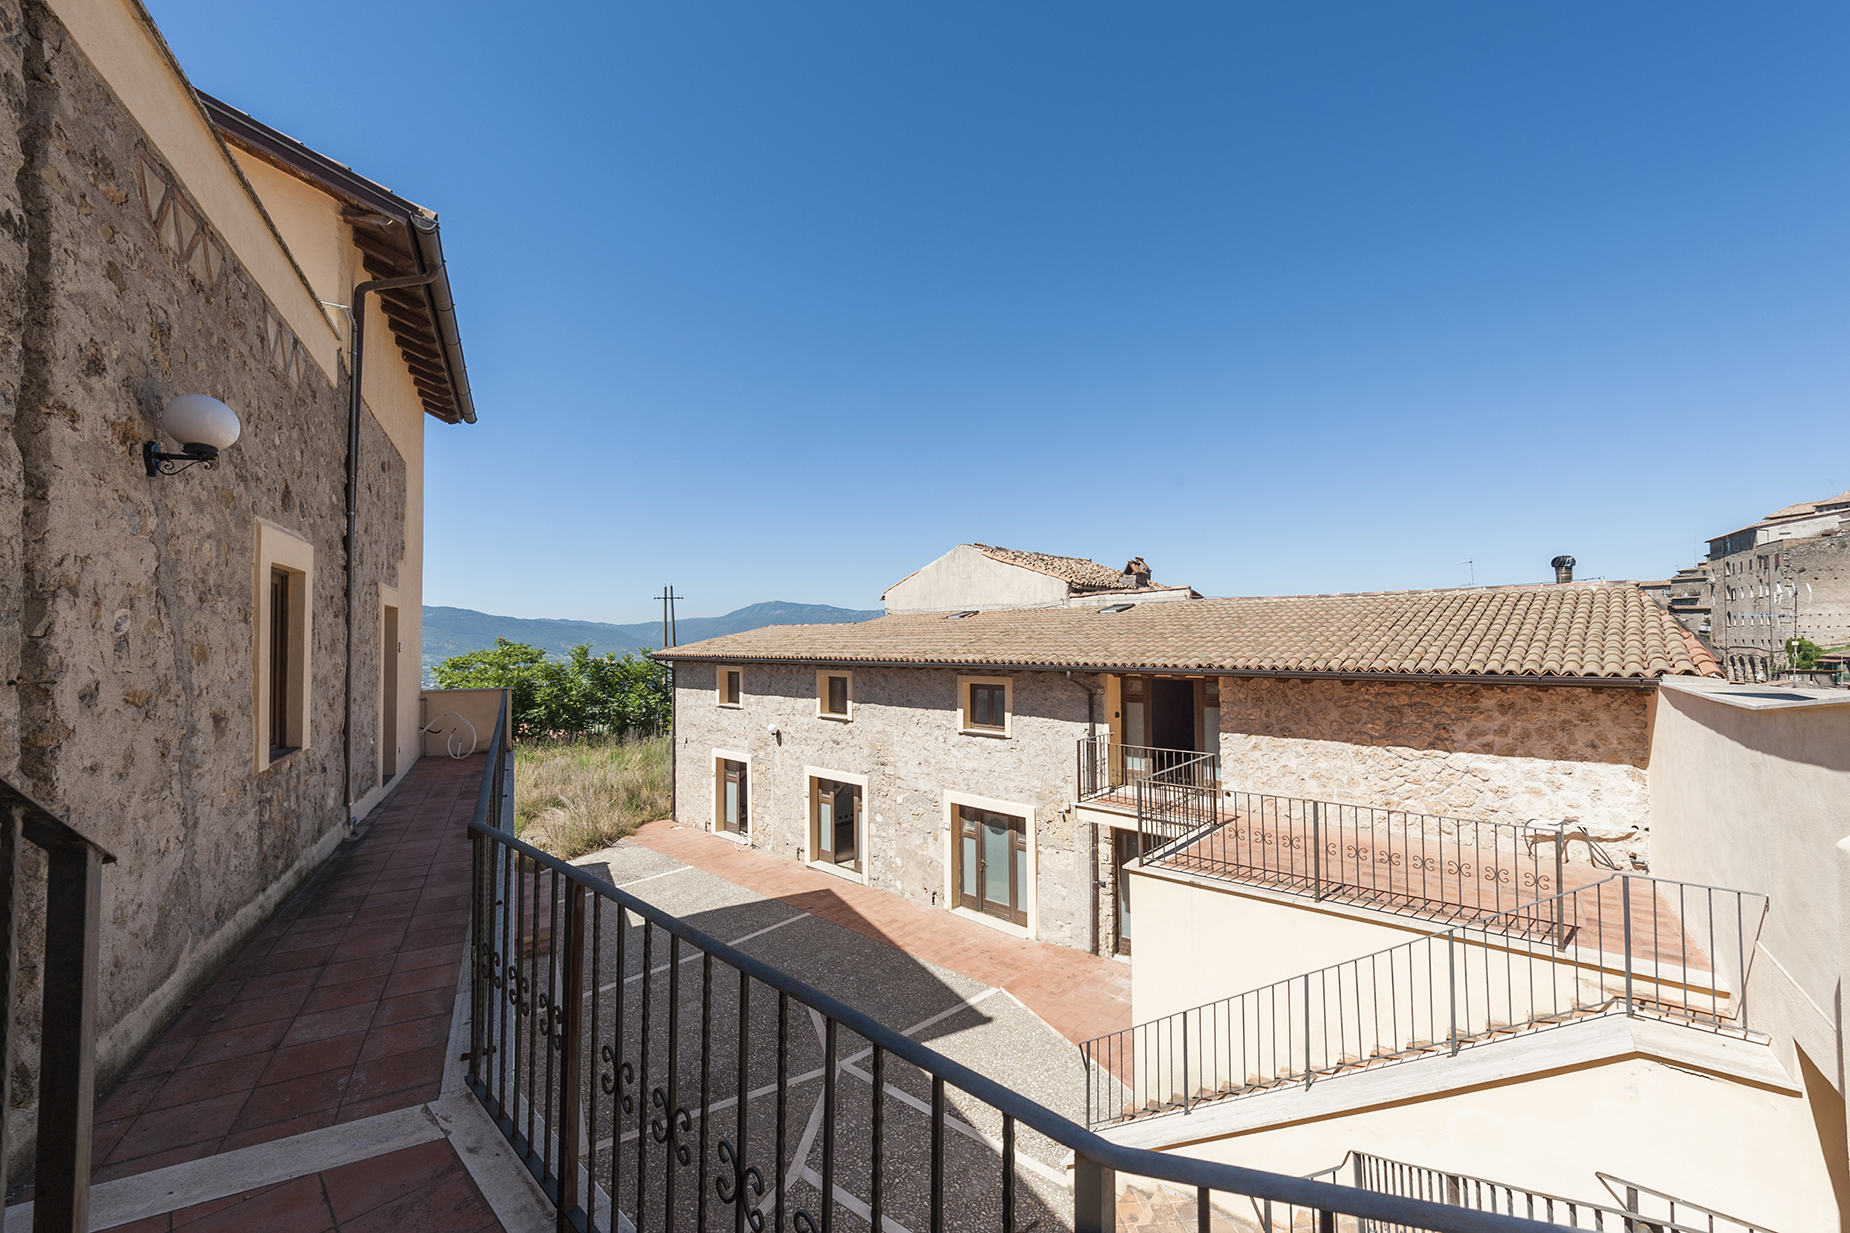 Additional photo for property listing at Residential complex in medieval city near Rome, Anagni Anagni, Frosinone Italia